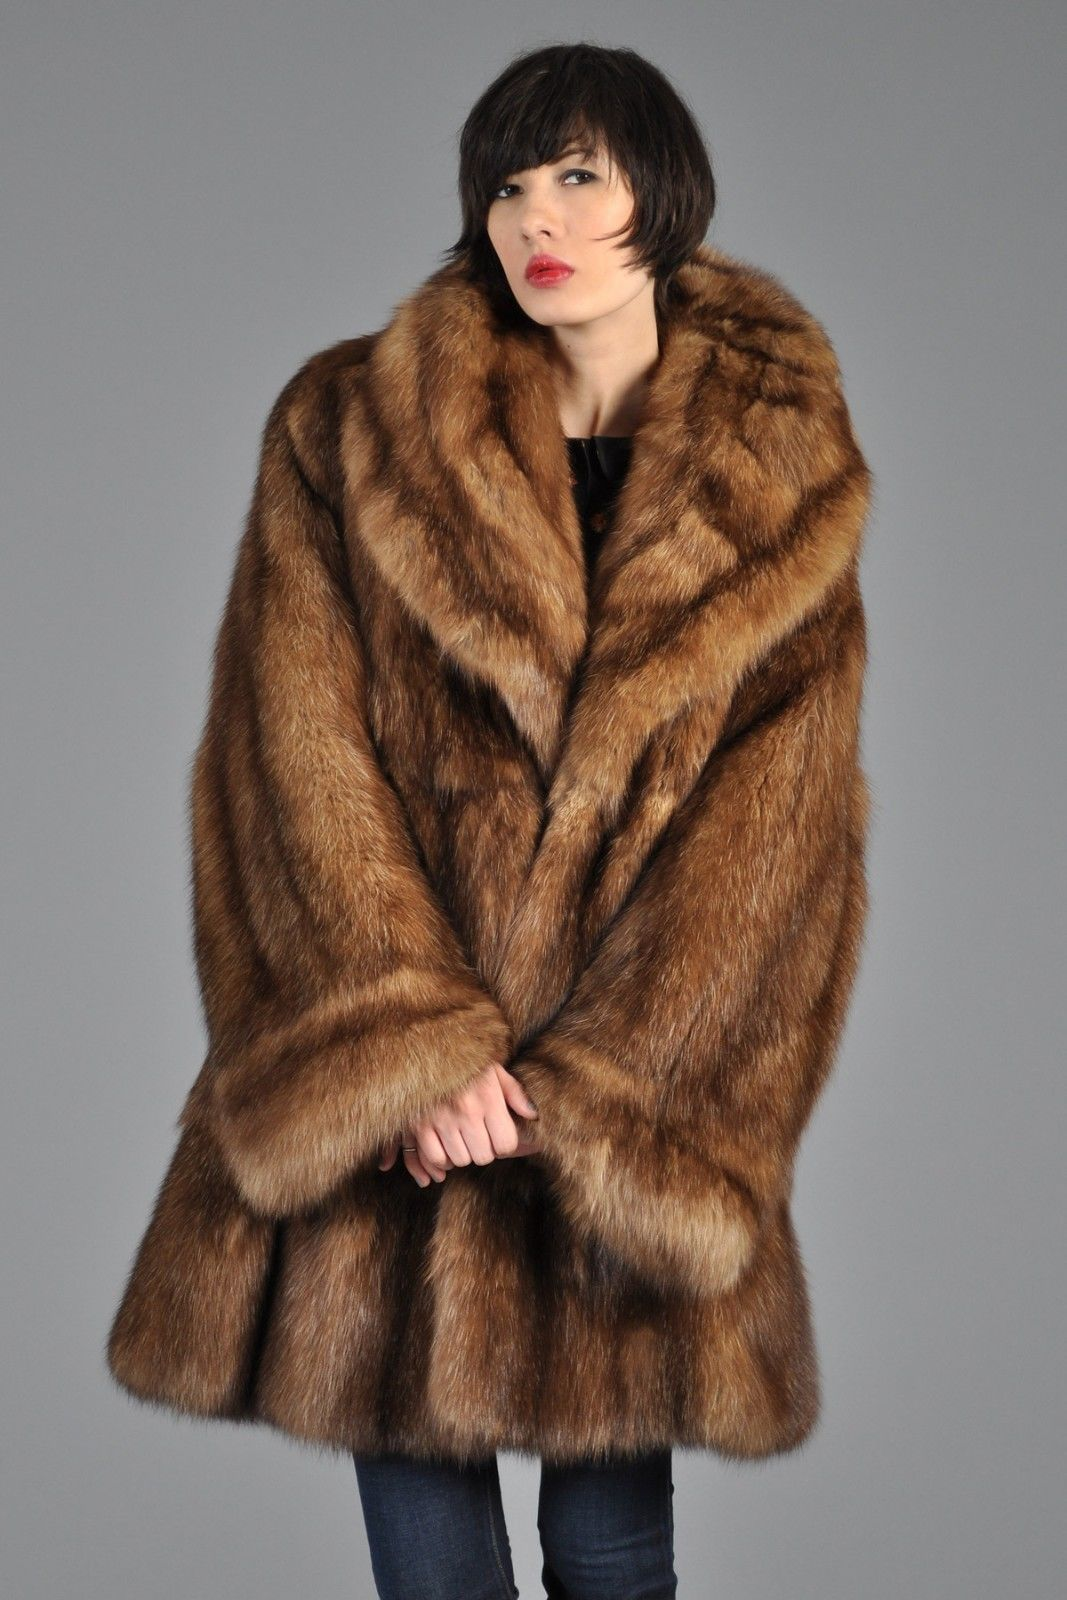 sable fur coat | sable | Pinterest | Fur, Fur coat and Guy laroche for Sable Fur Cape  585eri